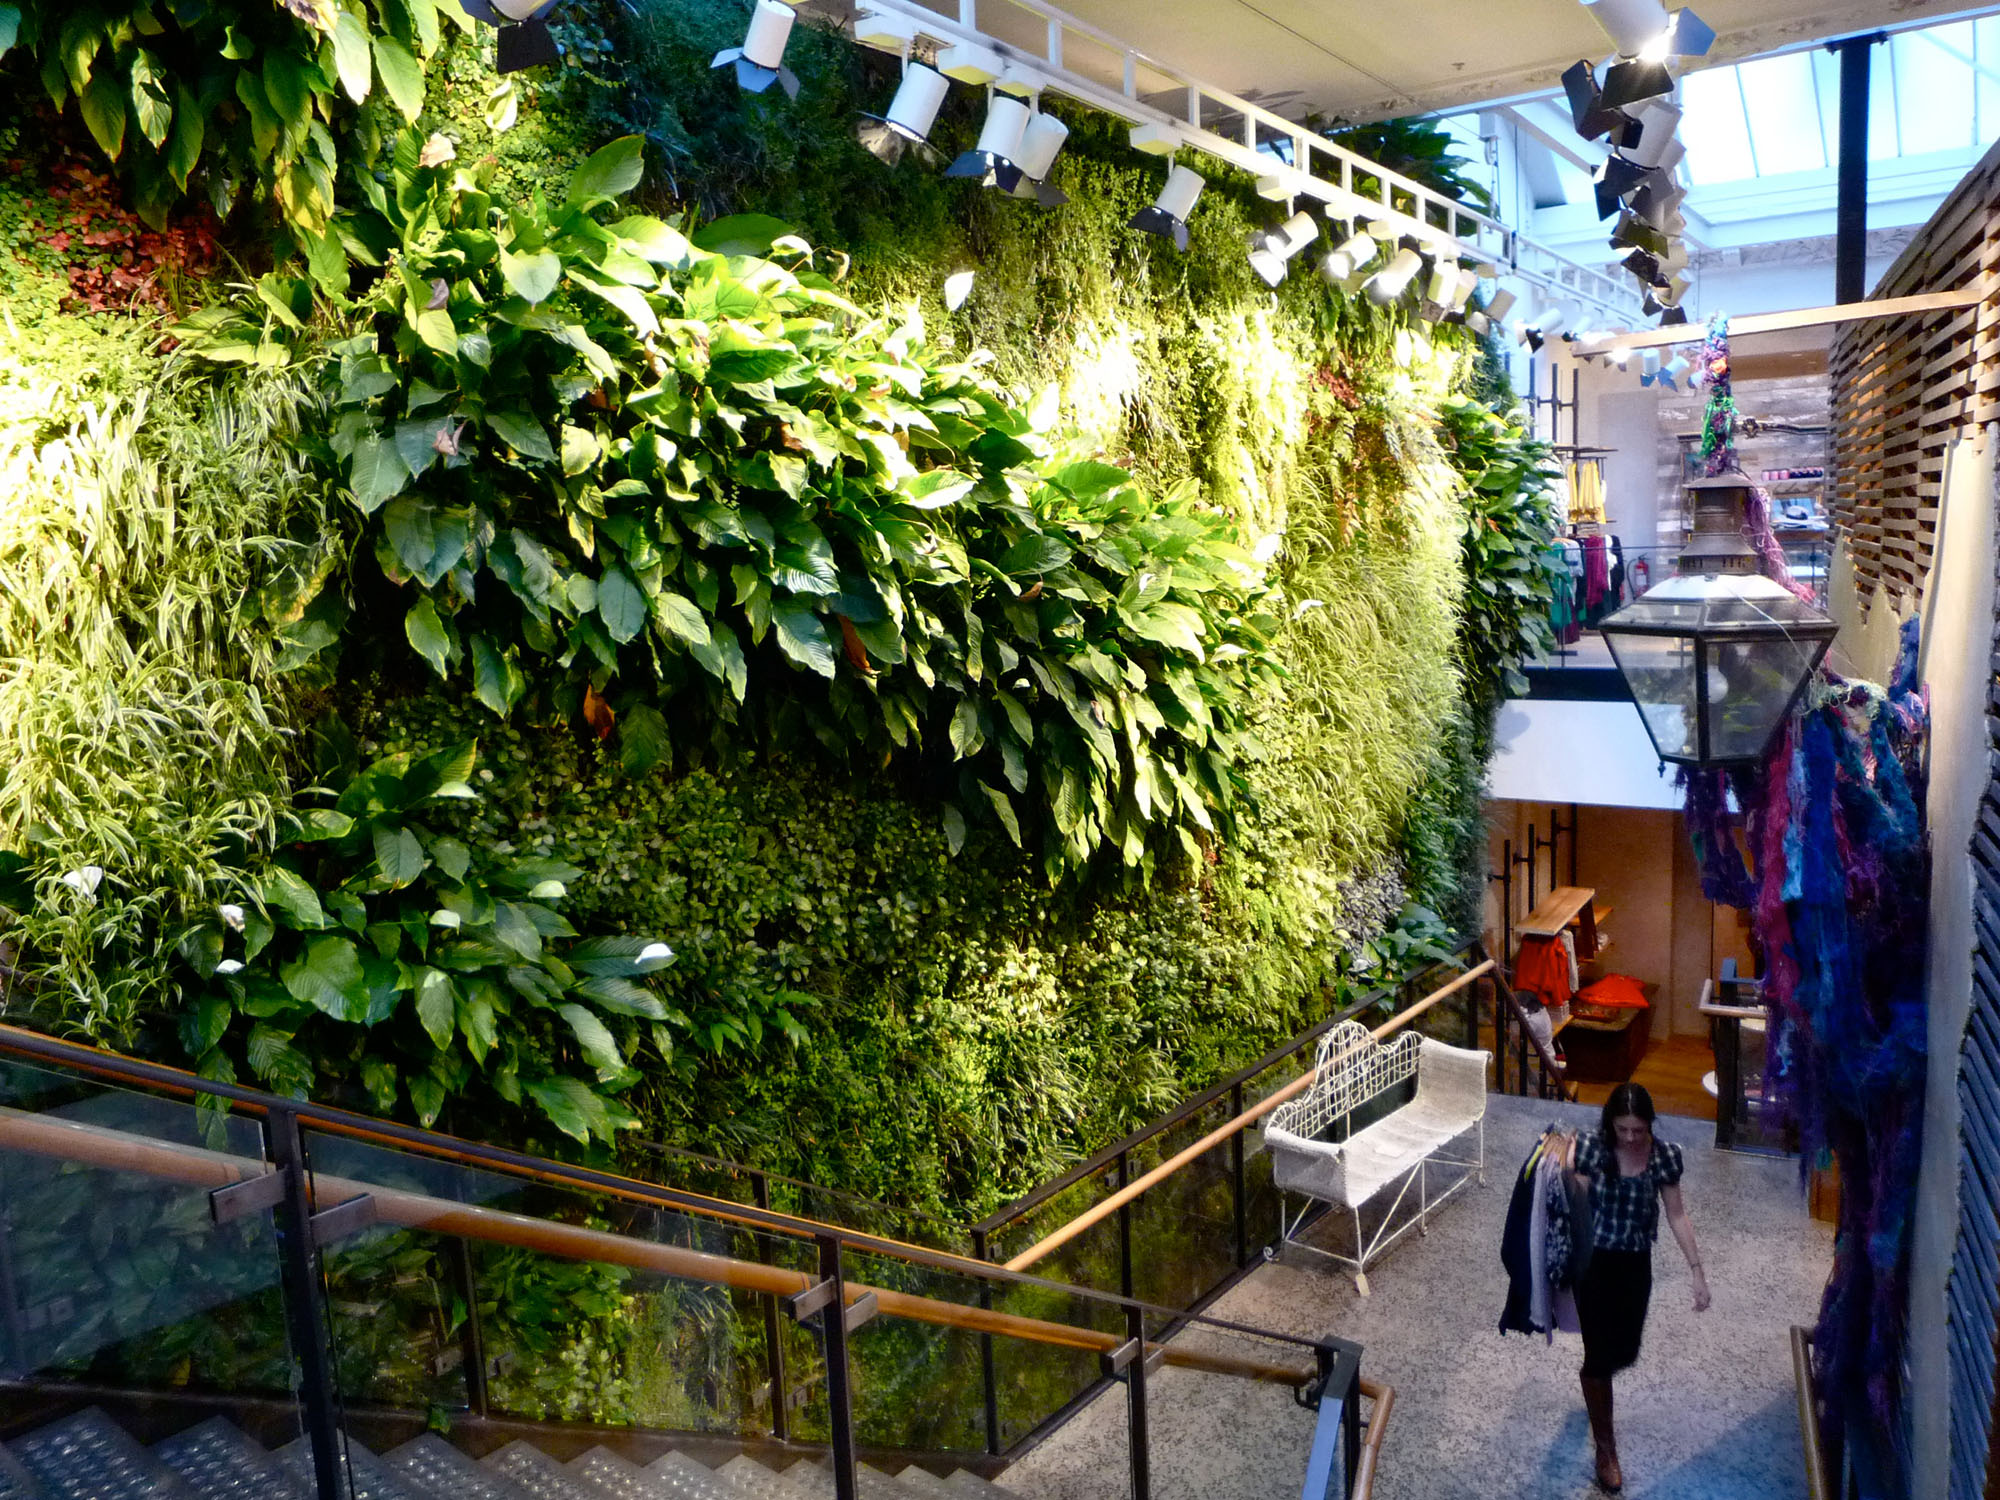 Two story living green wall in a clothing store.